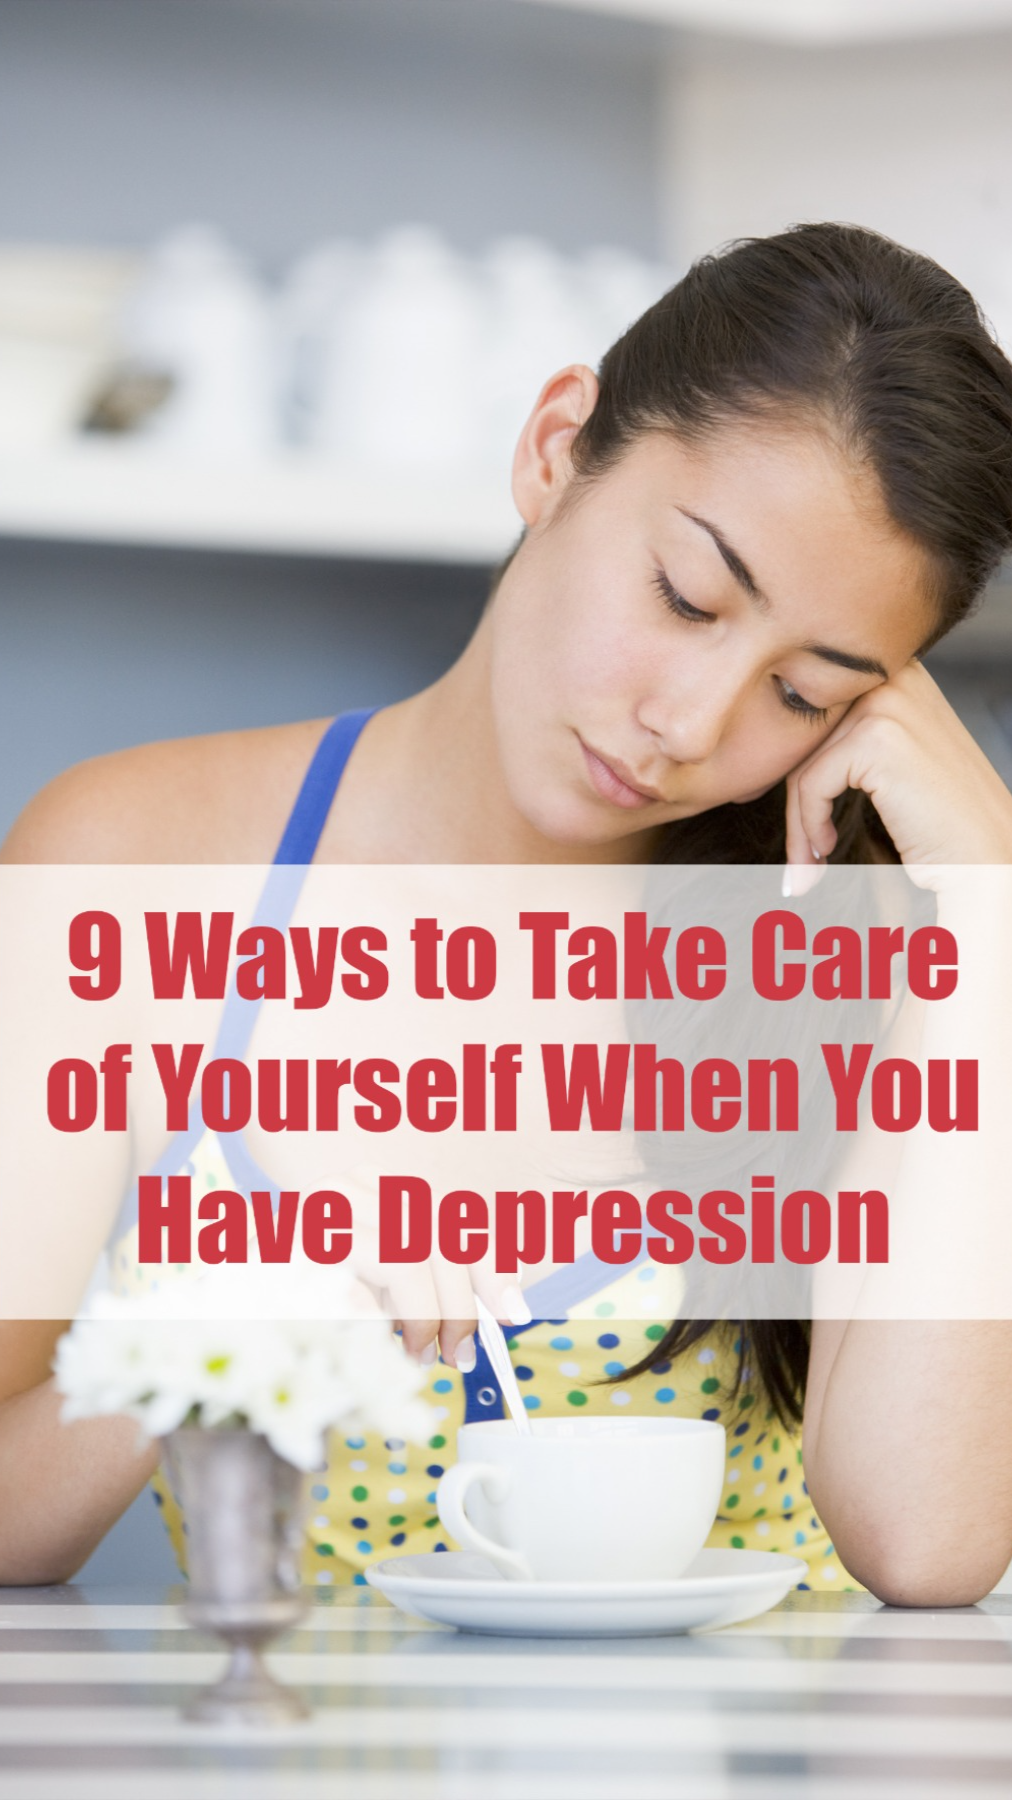 9 Ways to Take Care of Yourself When You Have Depression